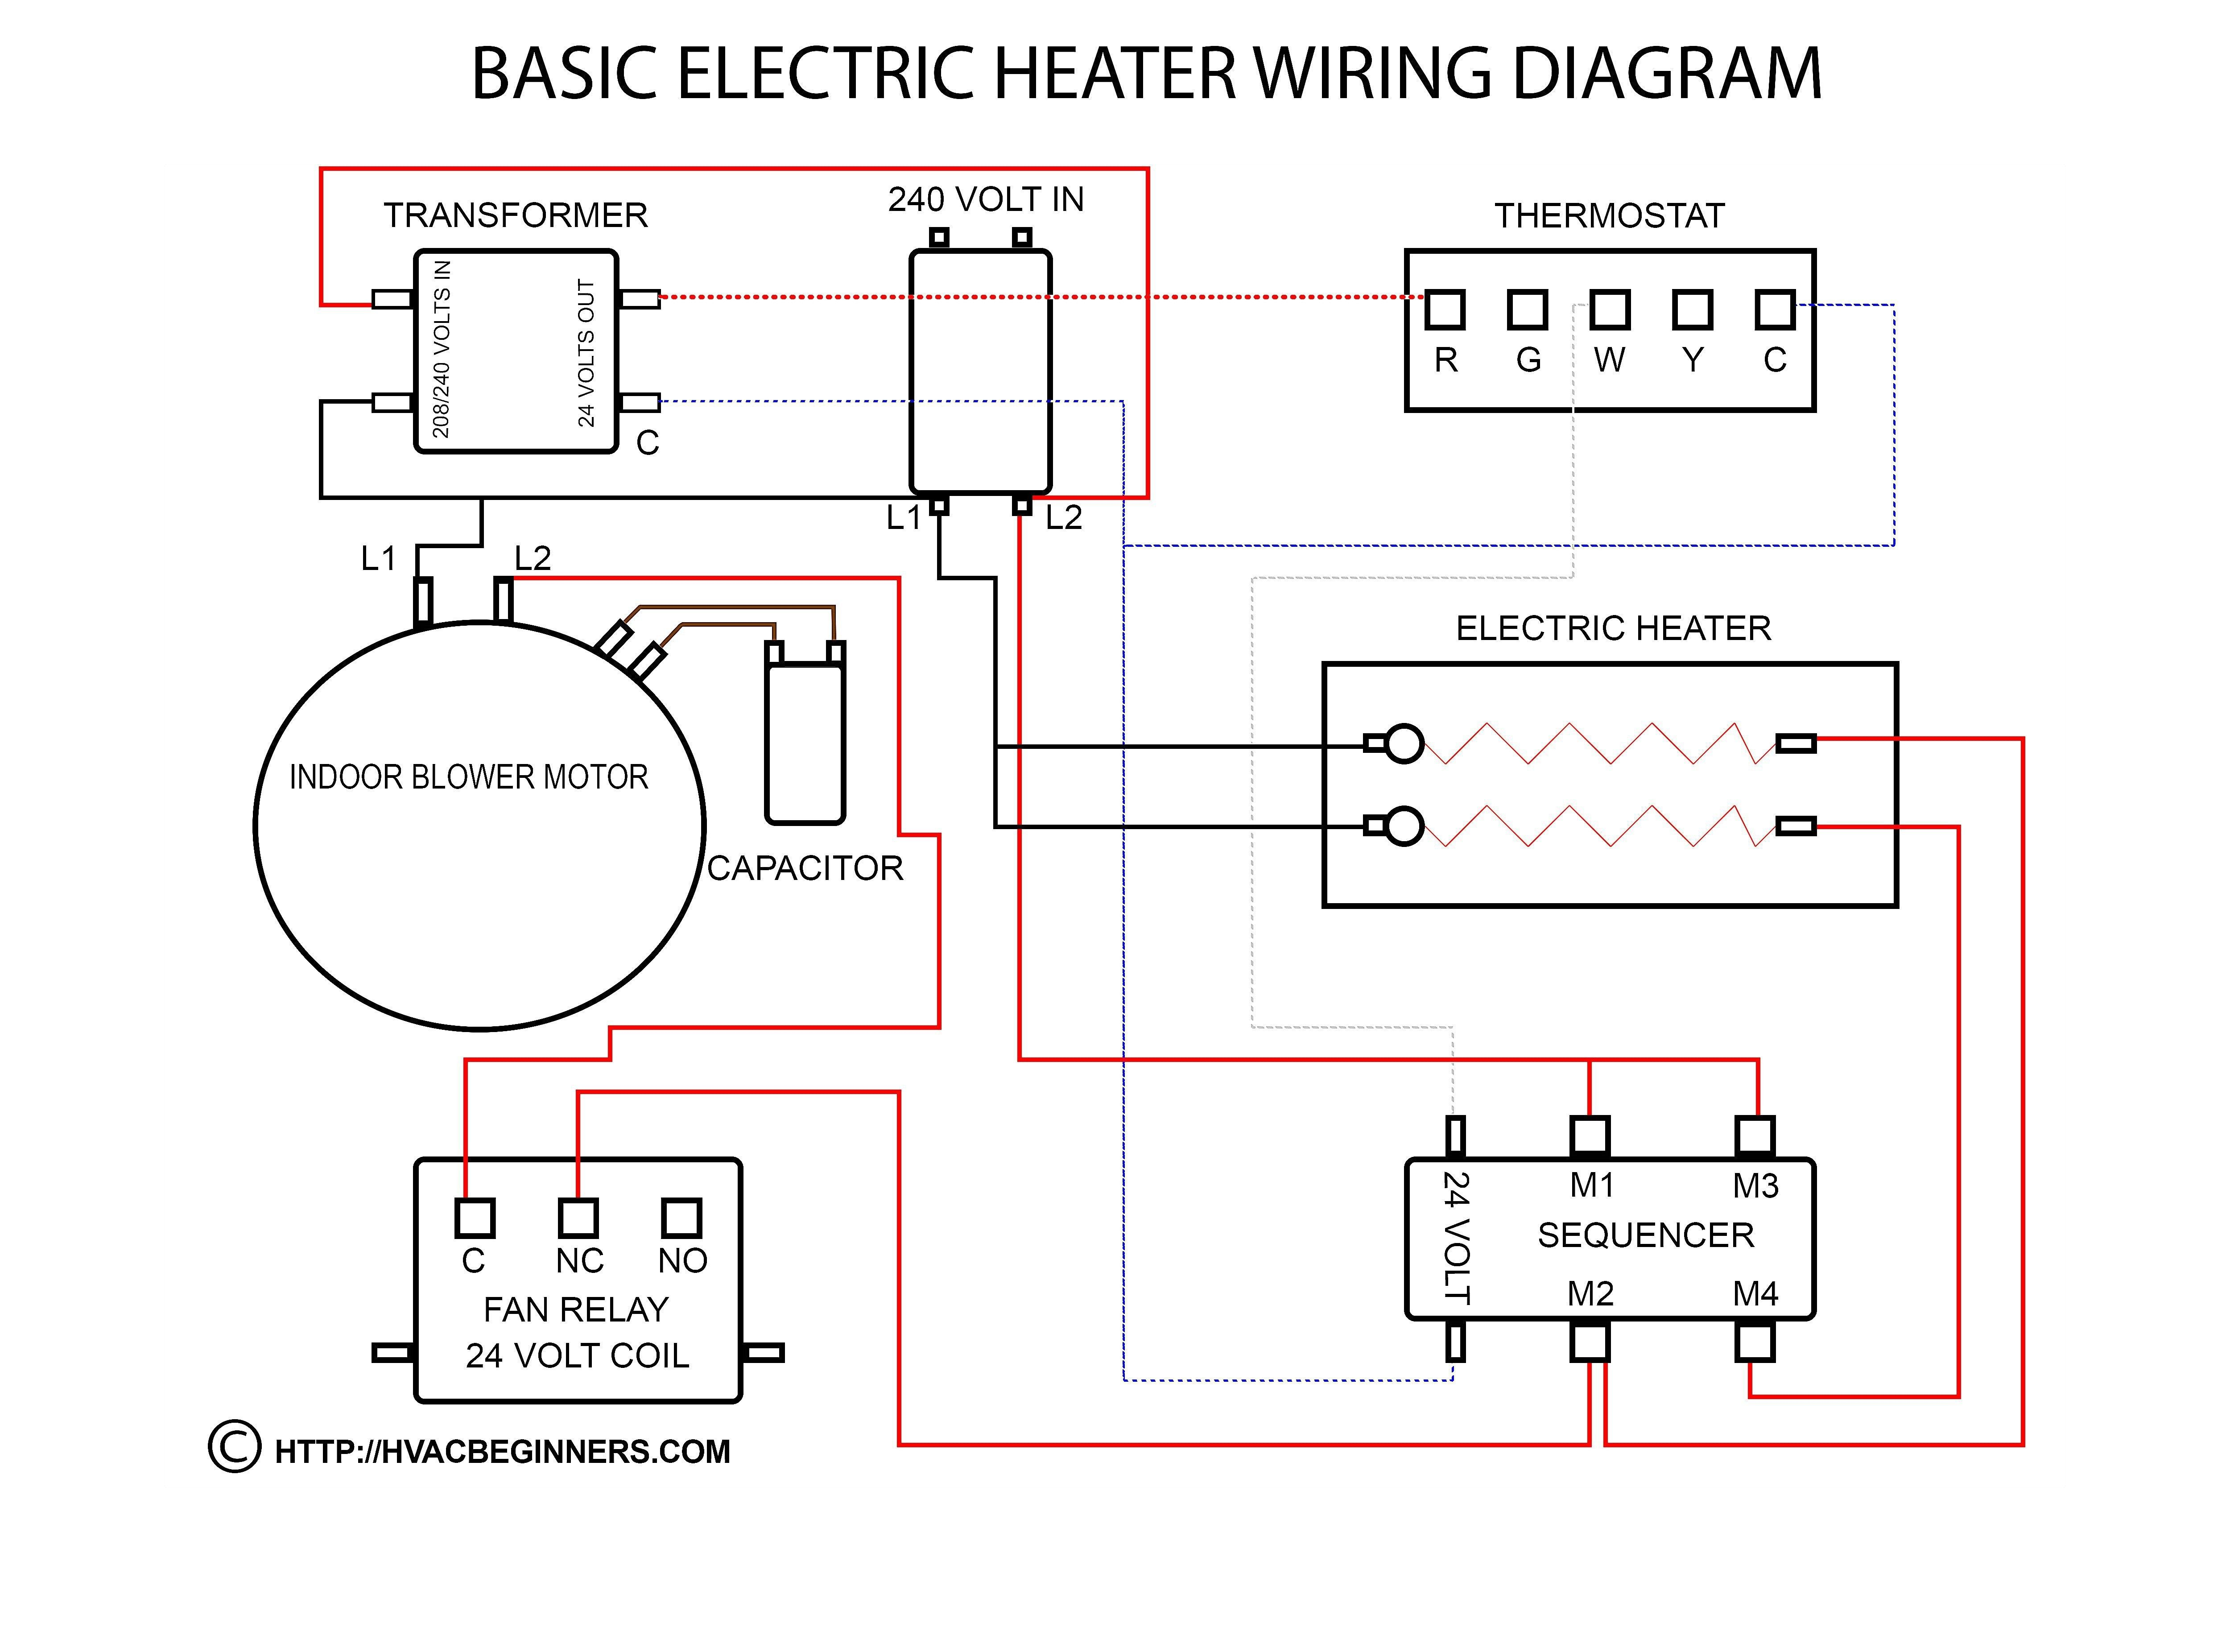 unique home wiring diagram sample diagram diagramsample diagramtemplate wiringdiagram diagramchart worksheet worksheettemplate [ 5000 x 3704 Pixel ]